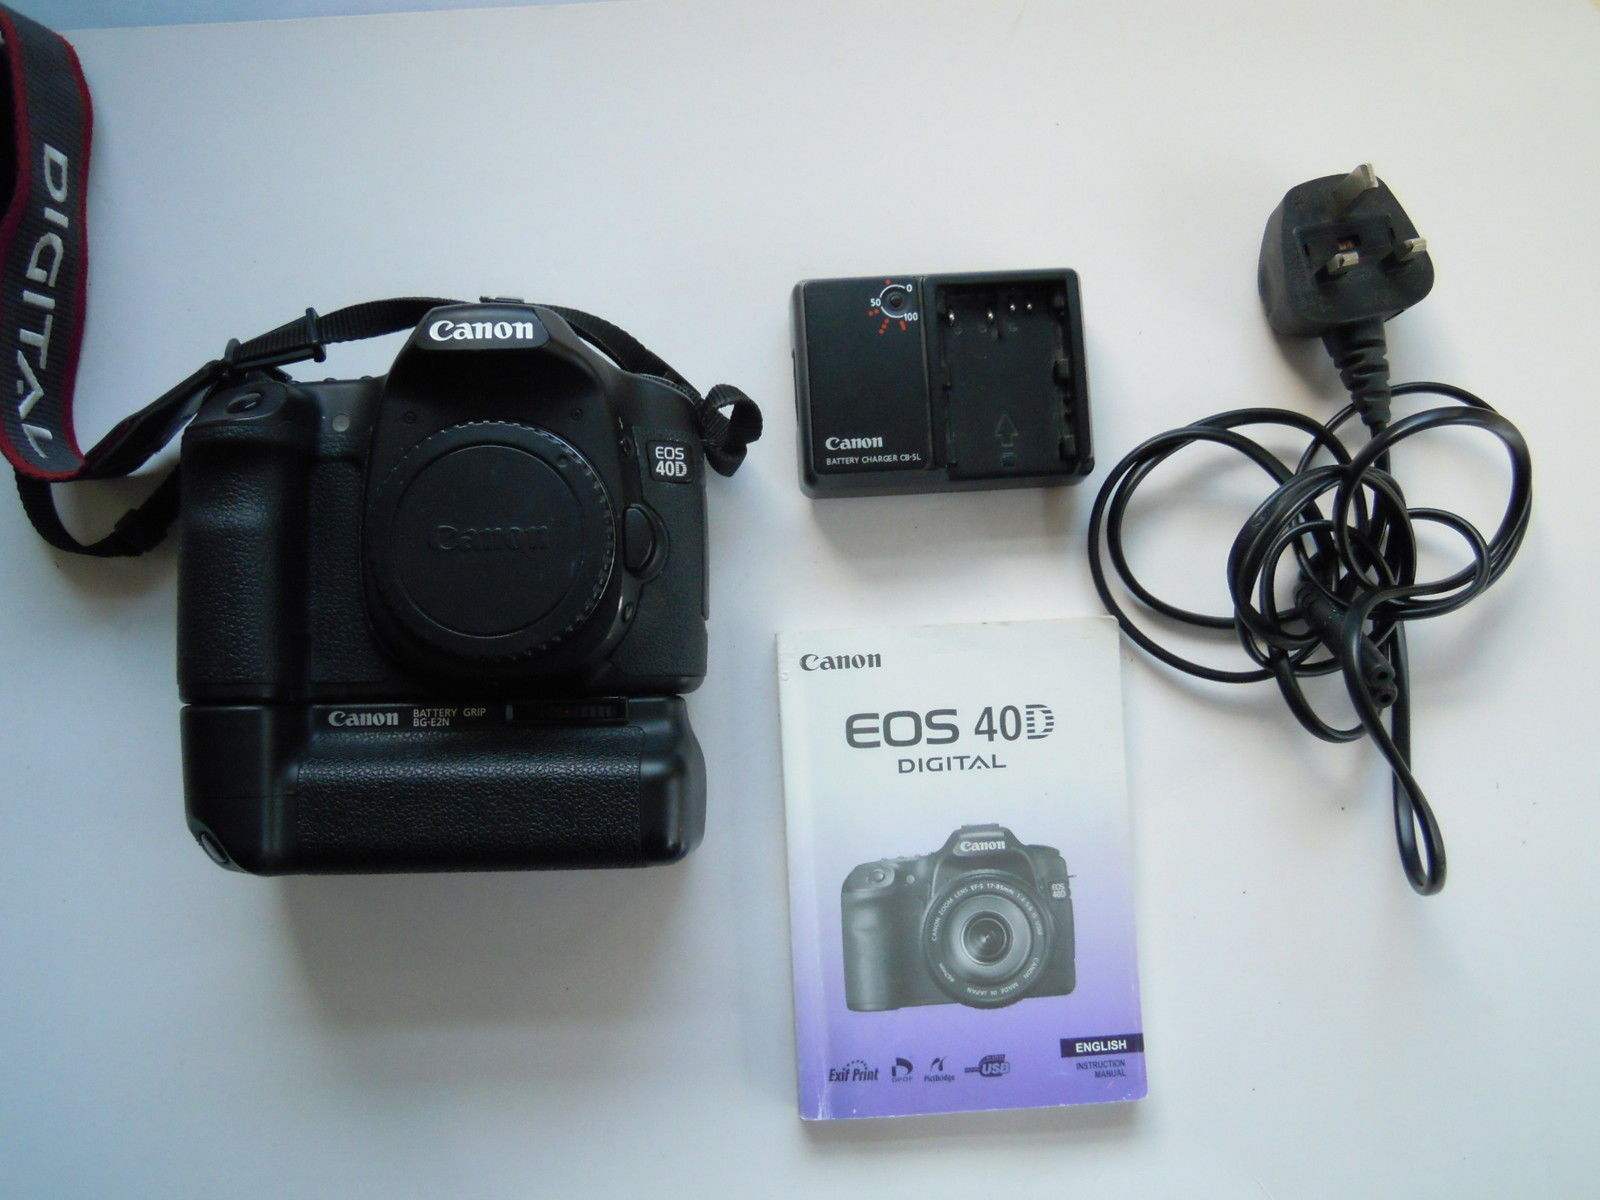 Canon EOS 40D 10 1 MP Digital SLR Camera - Black with